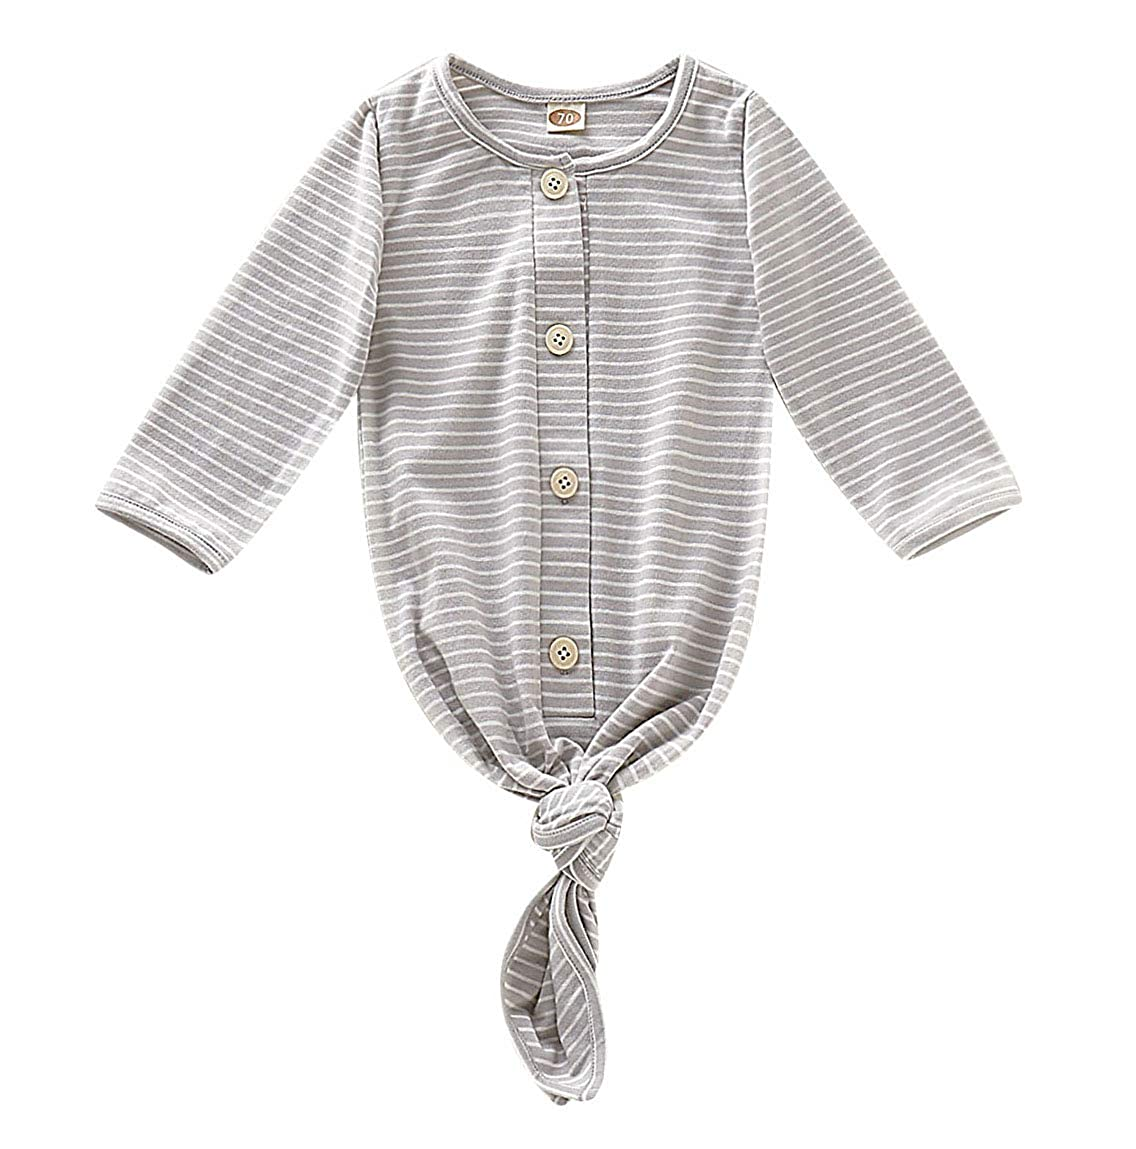 SAYOO Unisex Baby Striped Cotton Sleeper Gowns with Cap Long Knotted Sleeping Bag